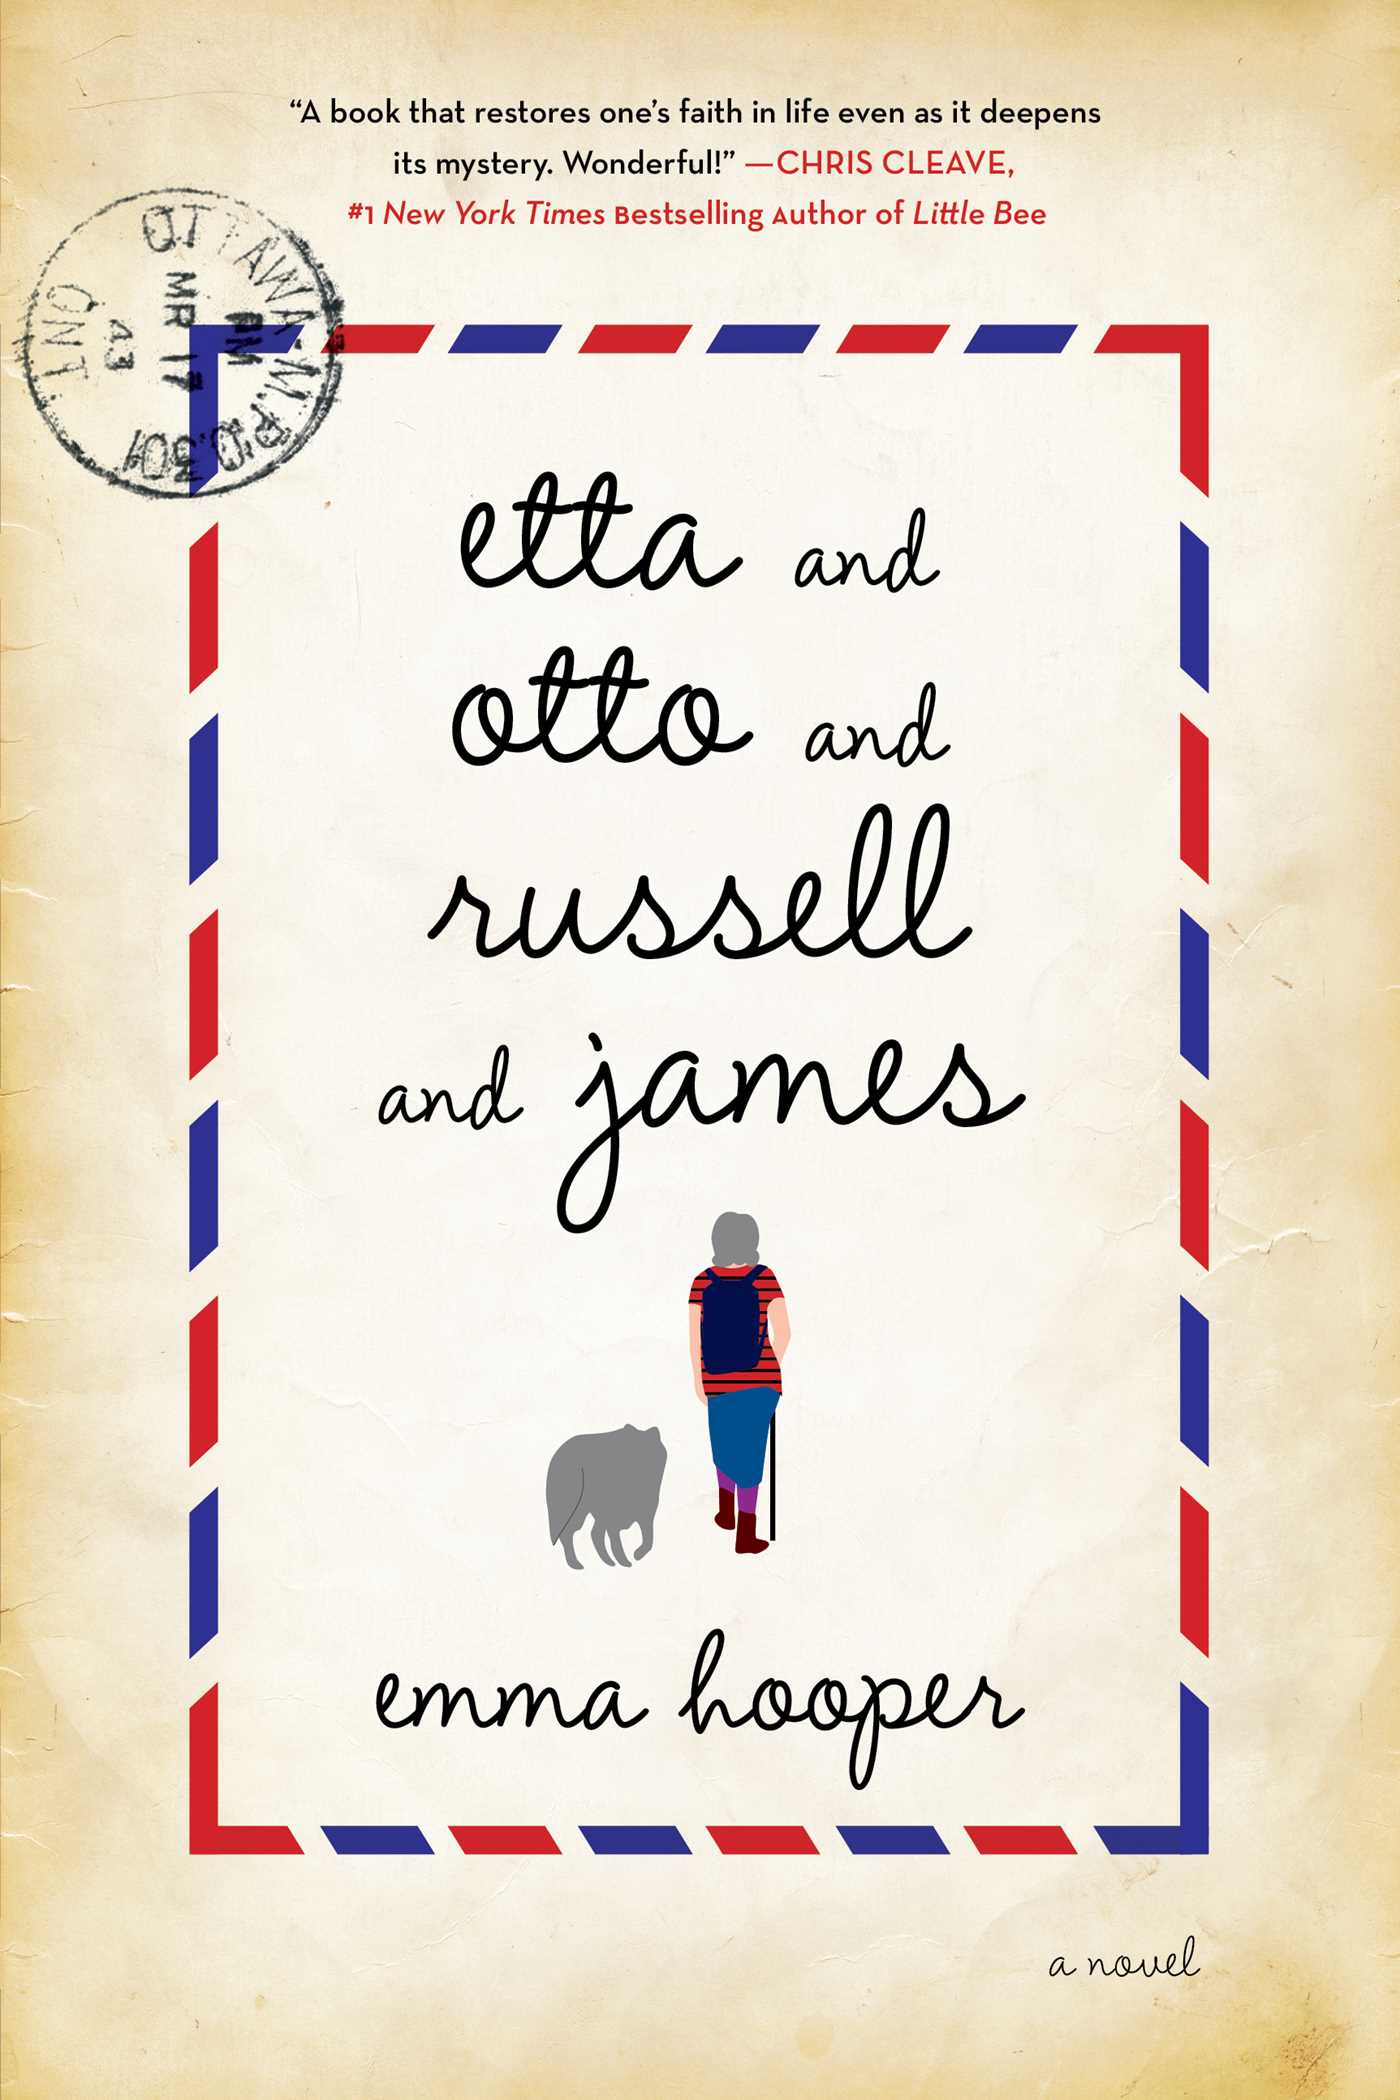 Etta-and-otto-and-russell-and-james-9781476755670_hr